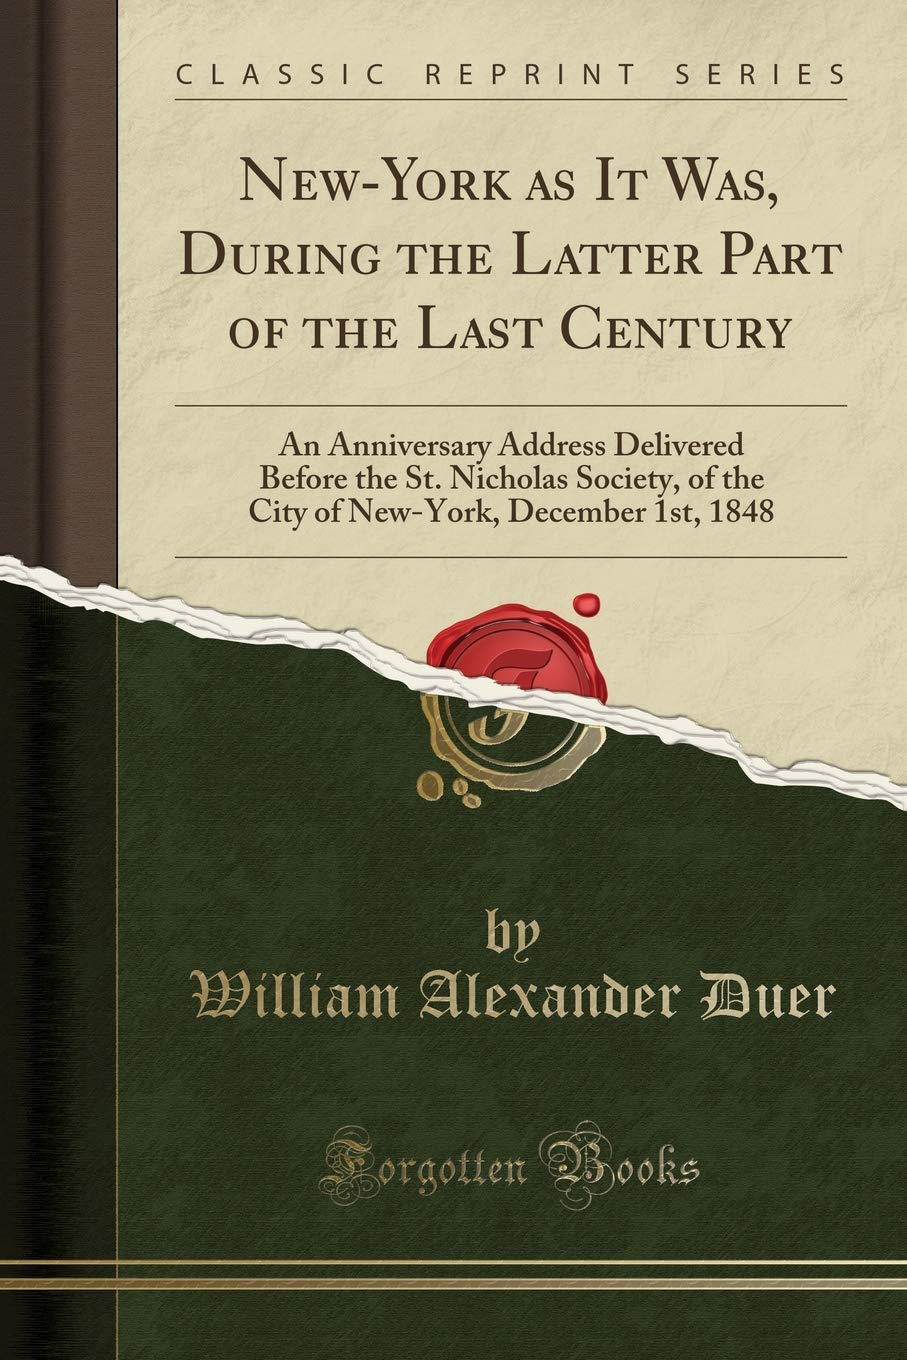 Download New-York as It Was, During the Latter Part of the Last Century: An Anniversary Address Delivered Before the St. Nicholas Society, of the City of New-York, December 1st, 1848 (Classic Reprint) ebook